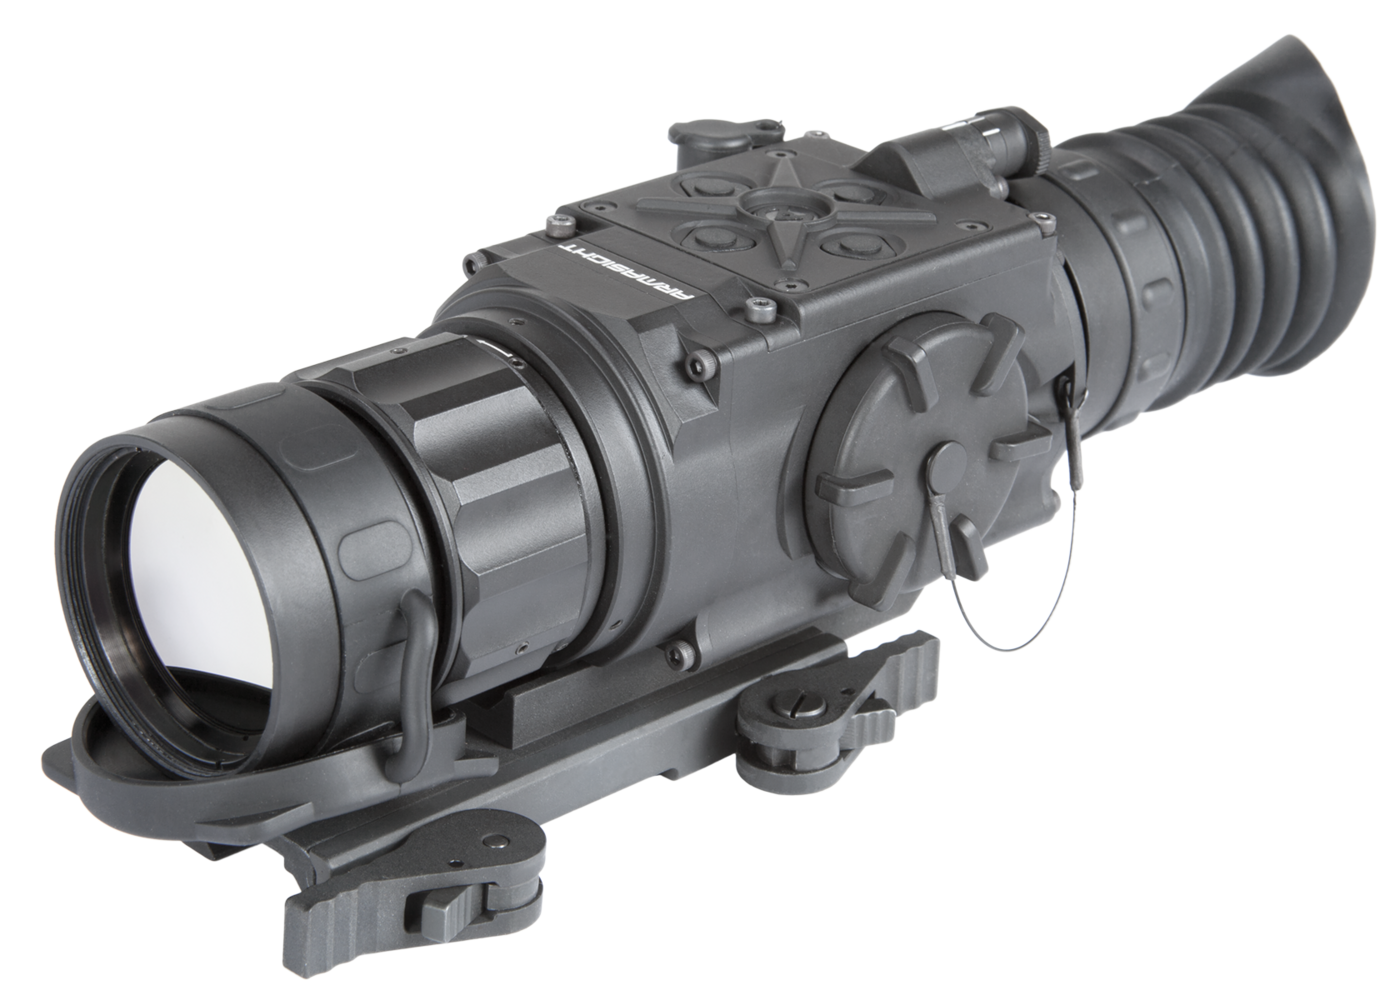 Armasight Zeus 336 3 12x42 30hz Thermal Imaging Rifle